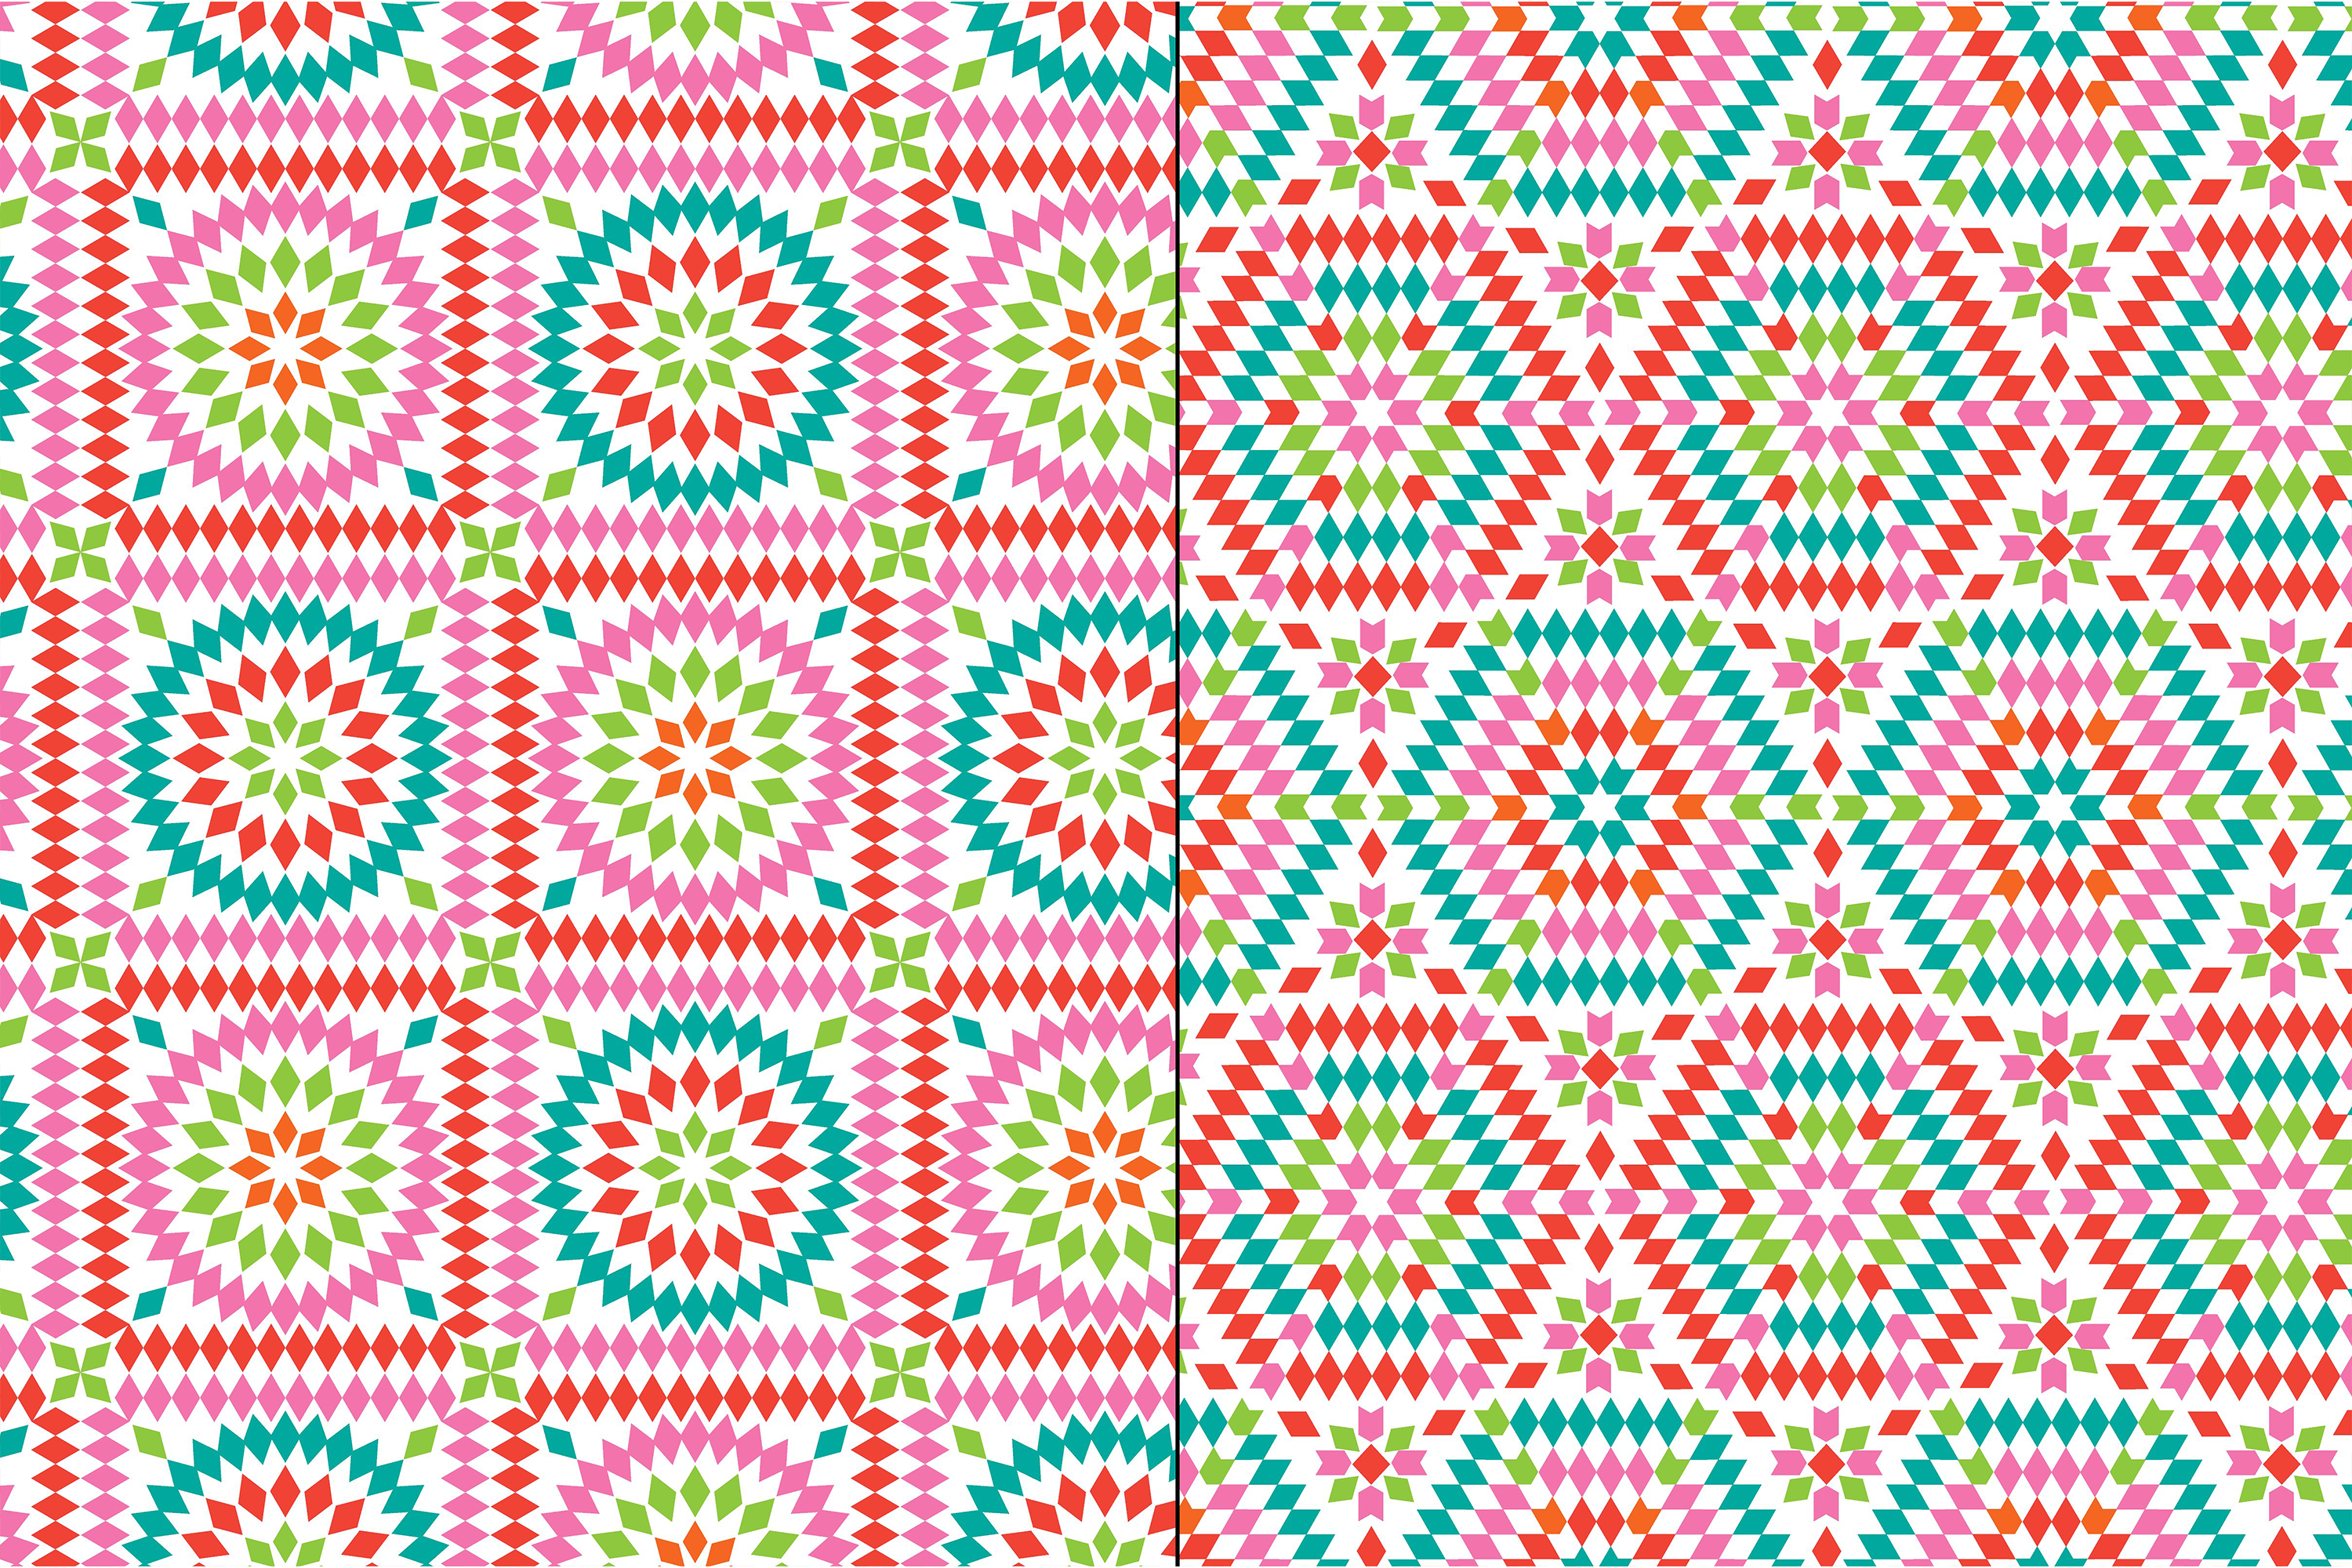 Granny Square Patterns example image 2